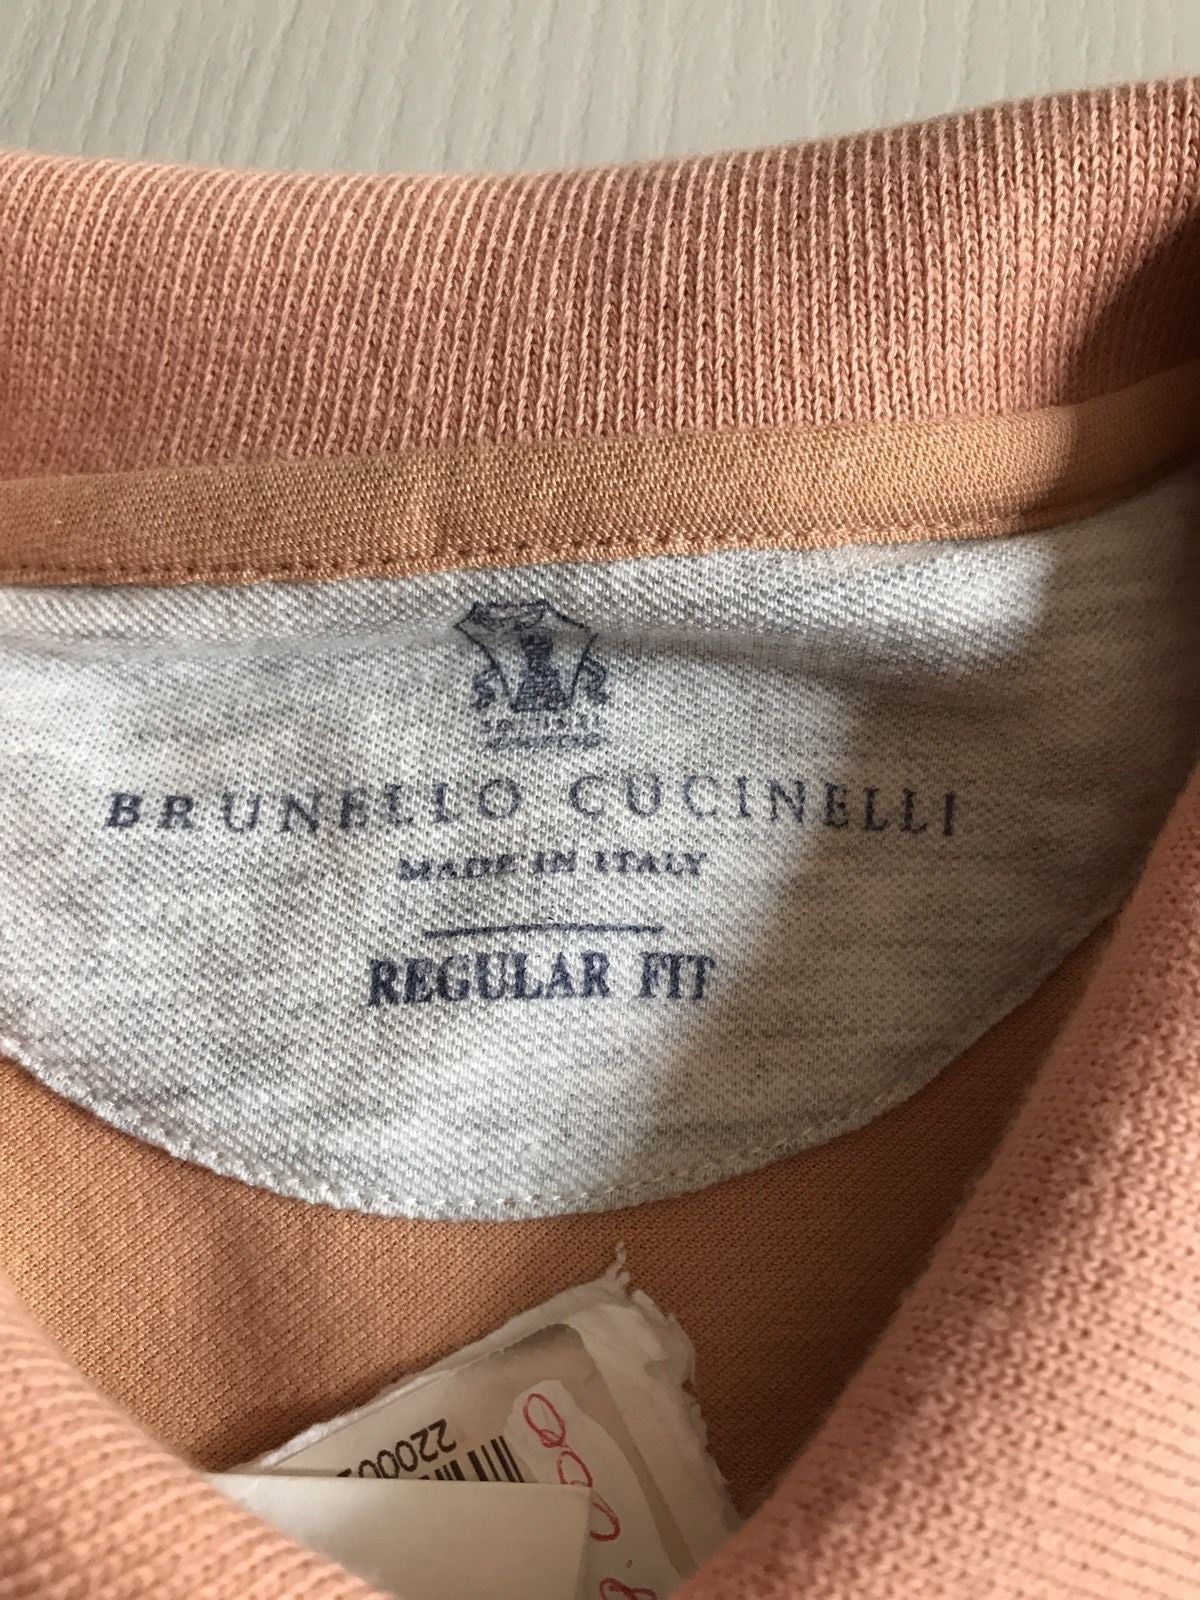 New $650 Brunello Cucinelli Men's Short Sleeve Polo Shirt Orange S US ( 48 Eu) - BAYSUPERSTORE